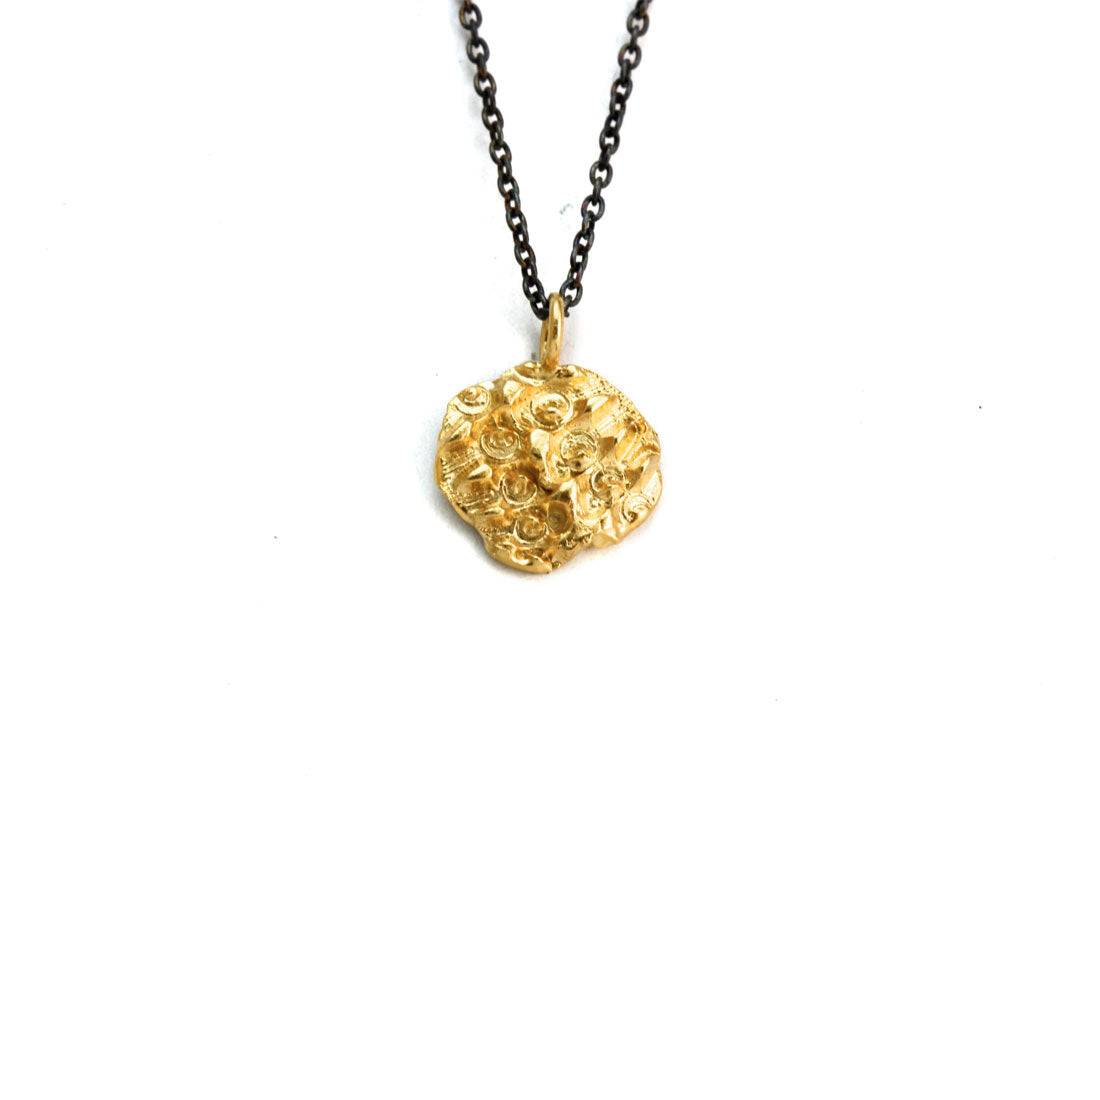 Textured gold plated pendant on oxidised silver chain, Bespoke custom handmade